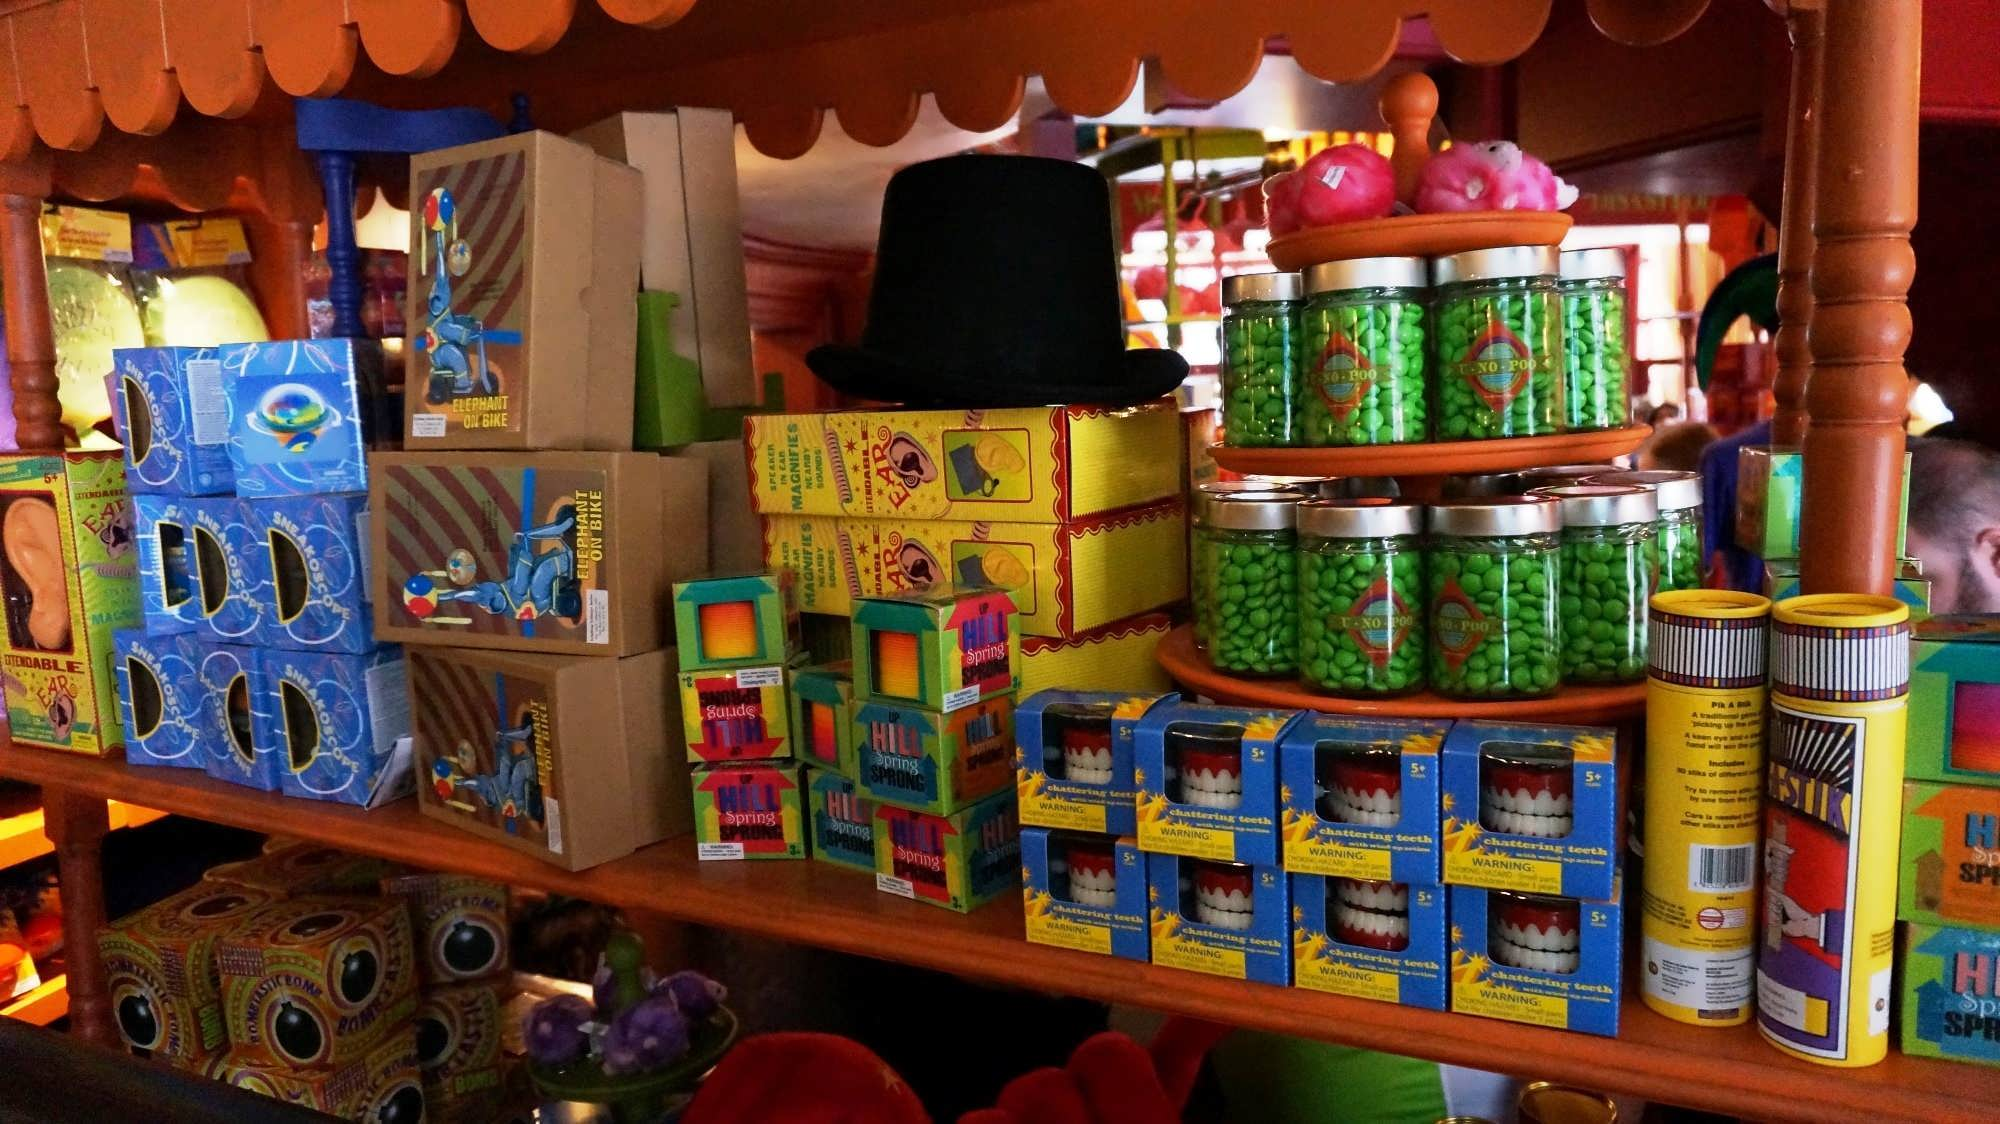 Weasleys' Wizard Wheezes merchandise at the Wizarding World of Harry Potter - Diagon Alley